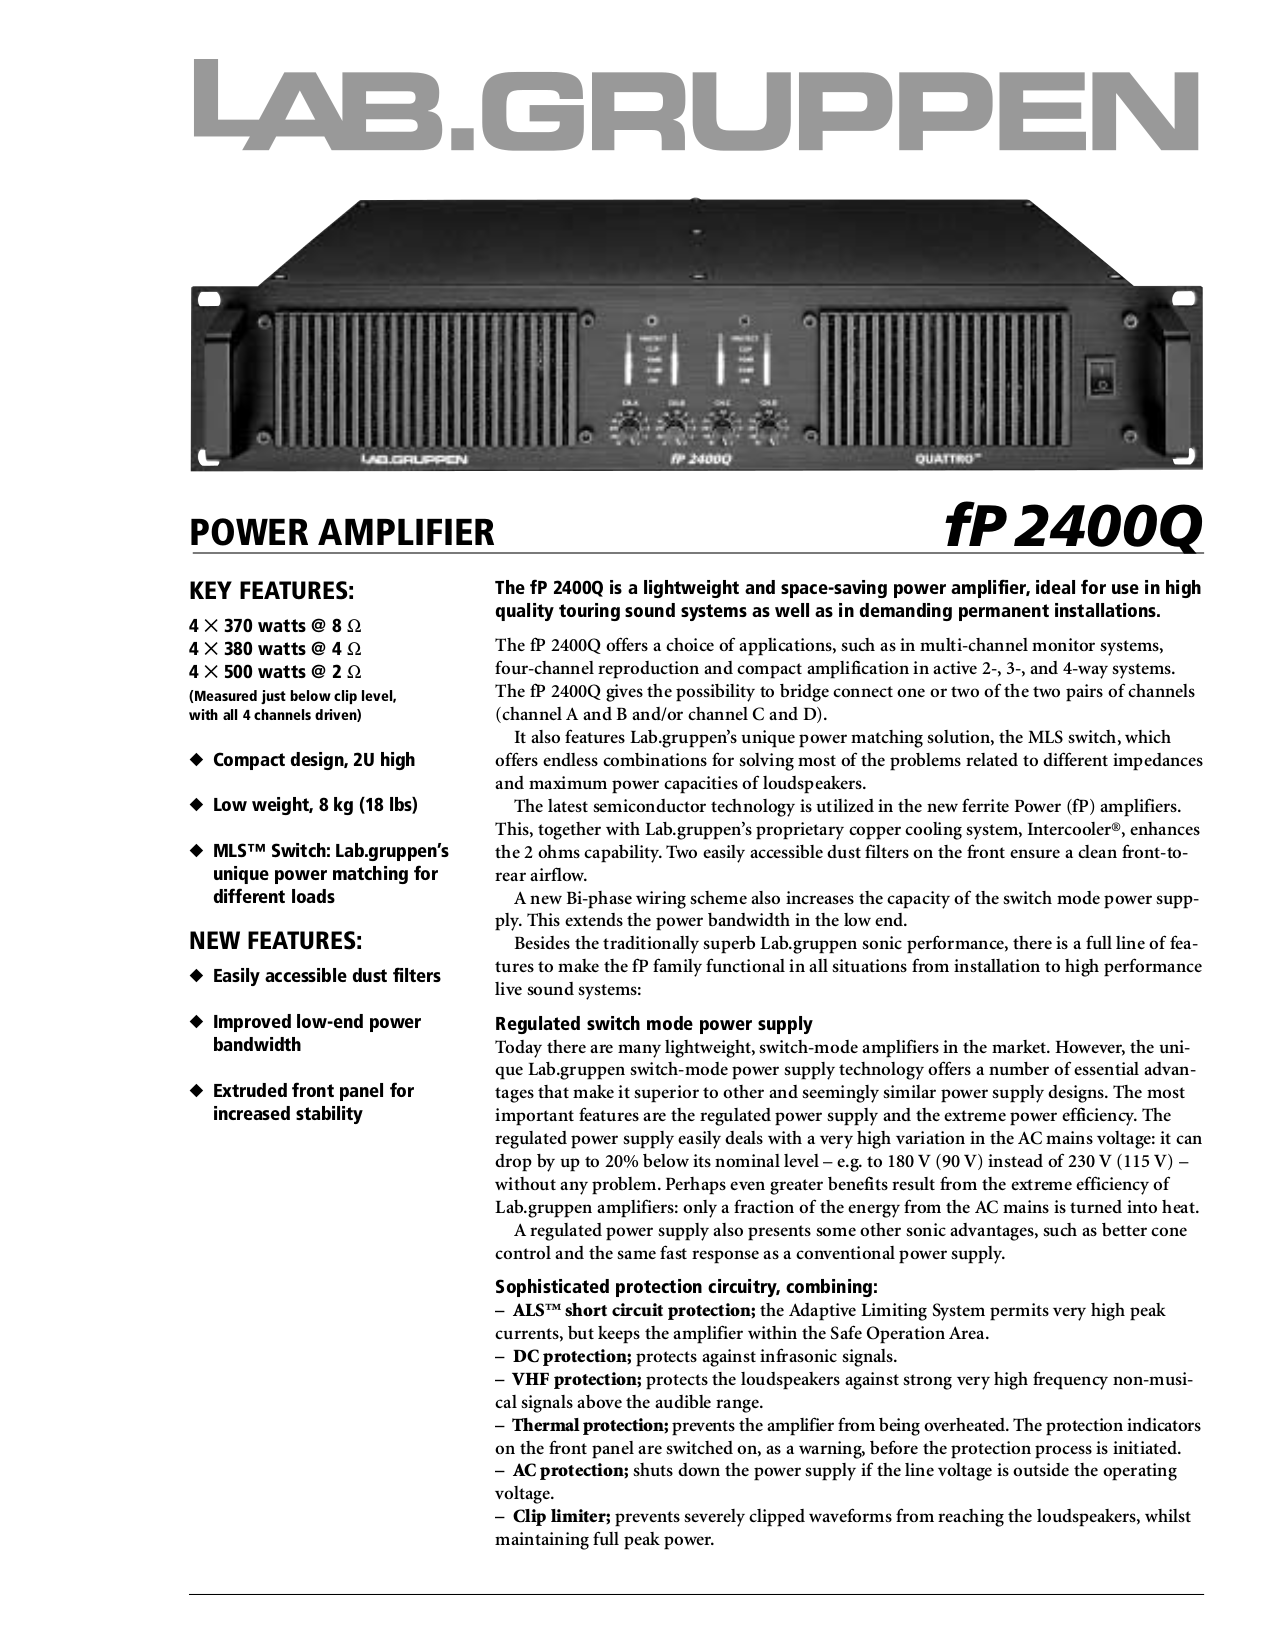 pdf for Lab.gruppen Amp fP Series FP 2400Q manual